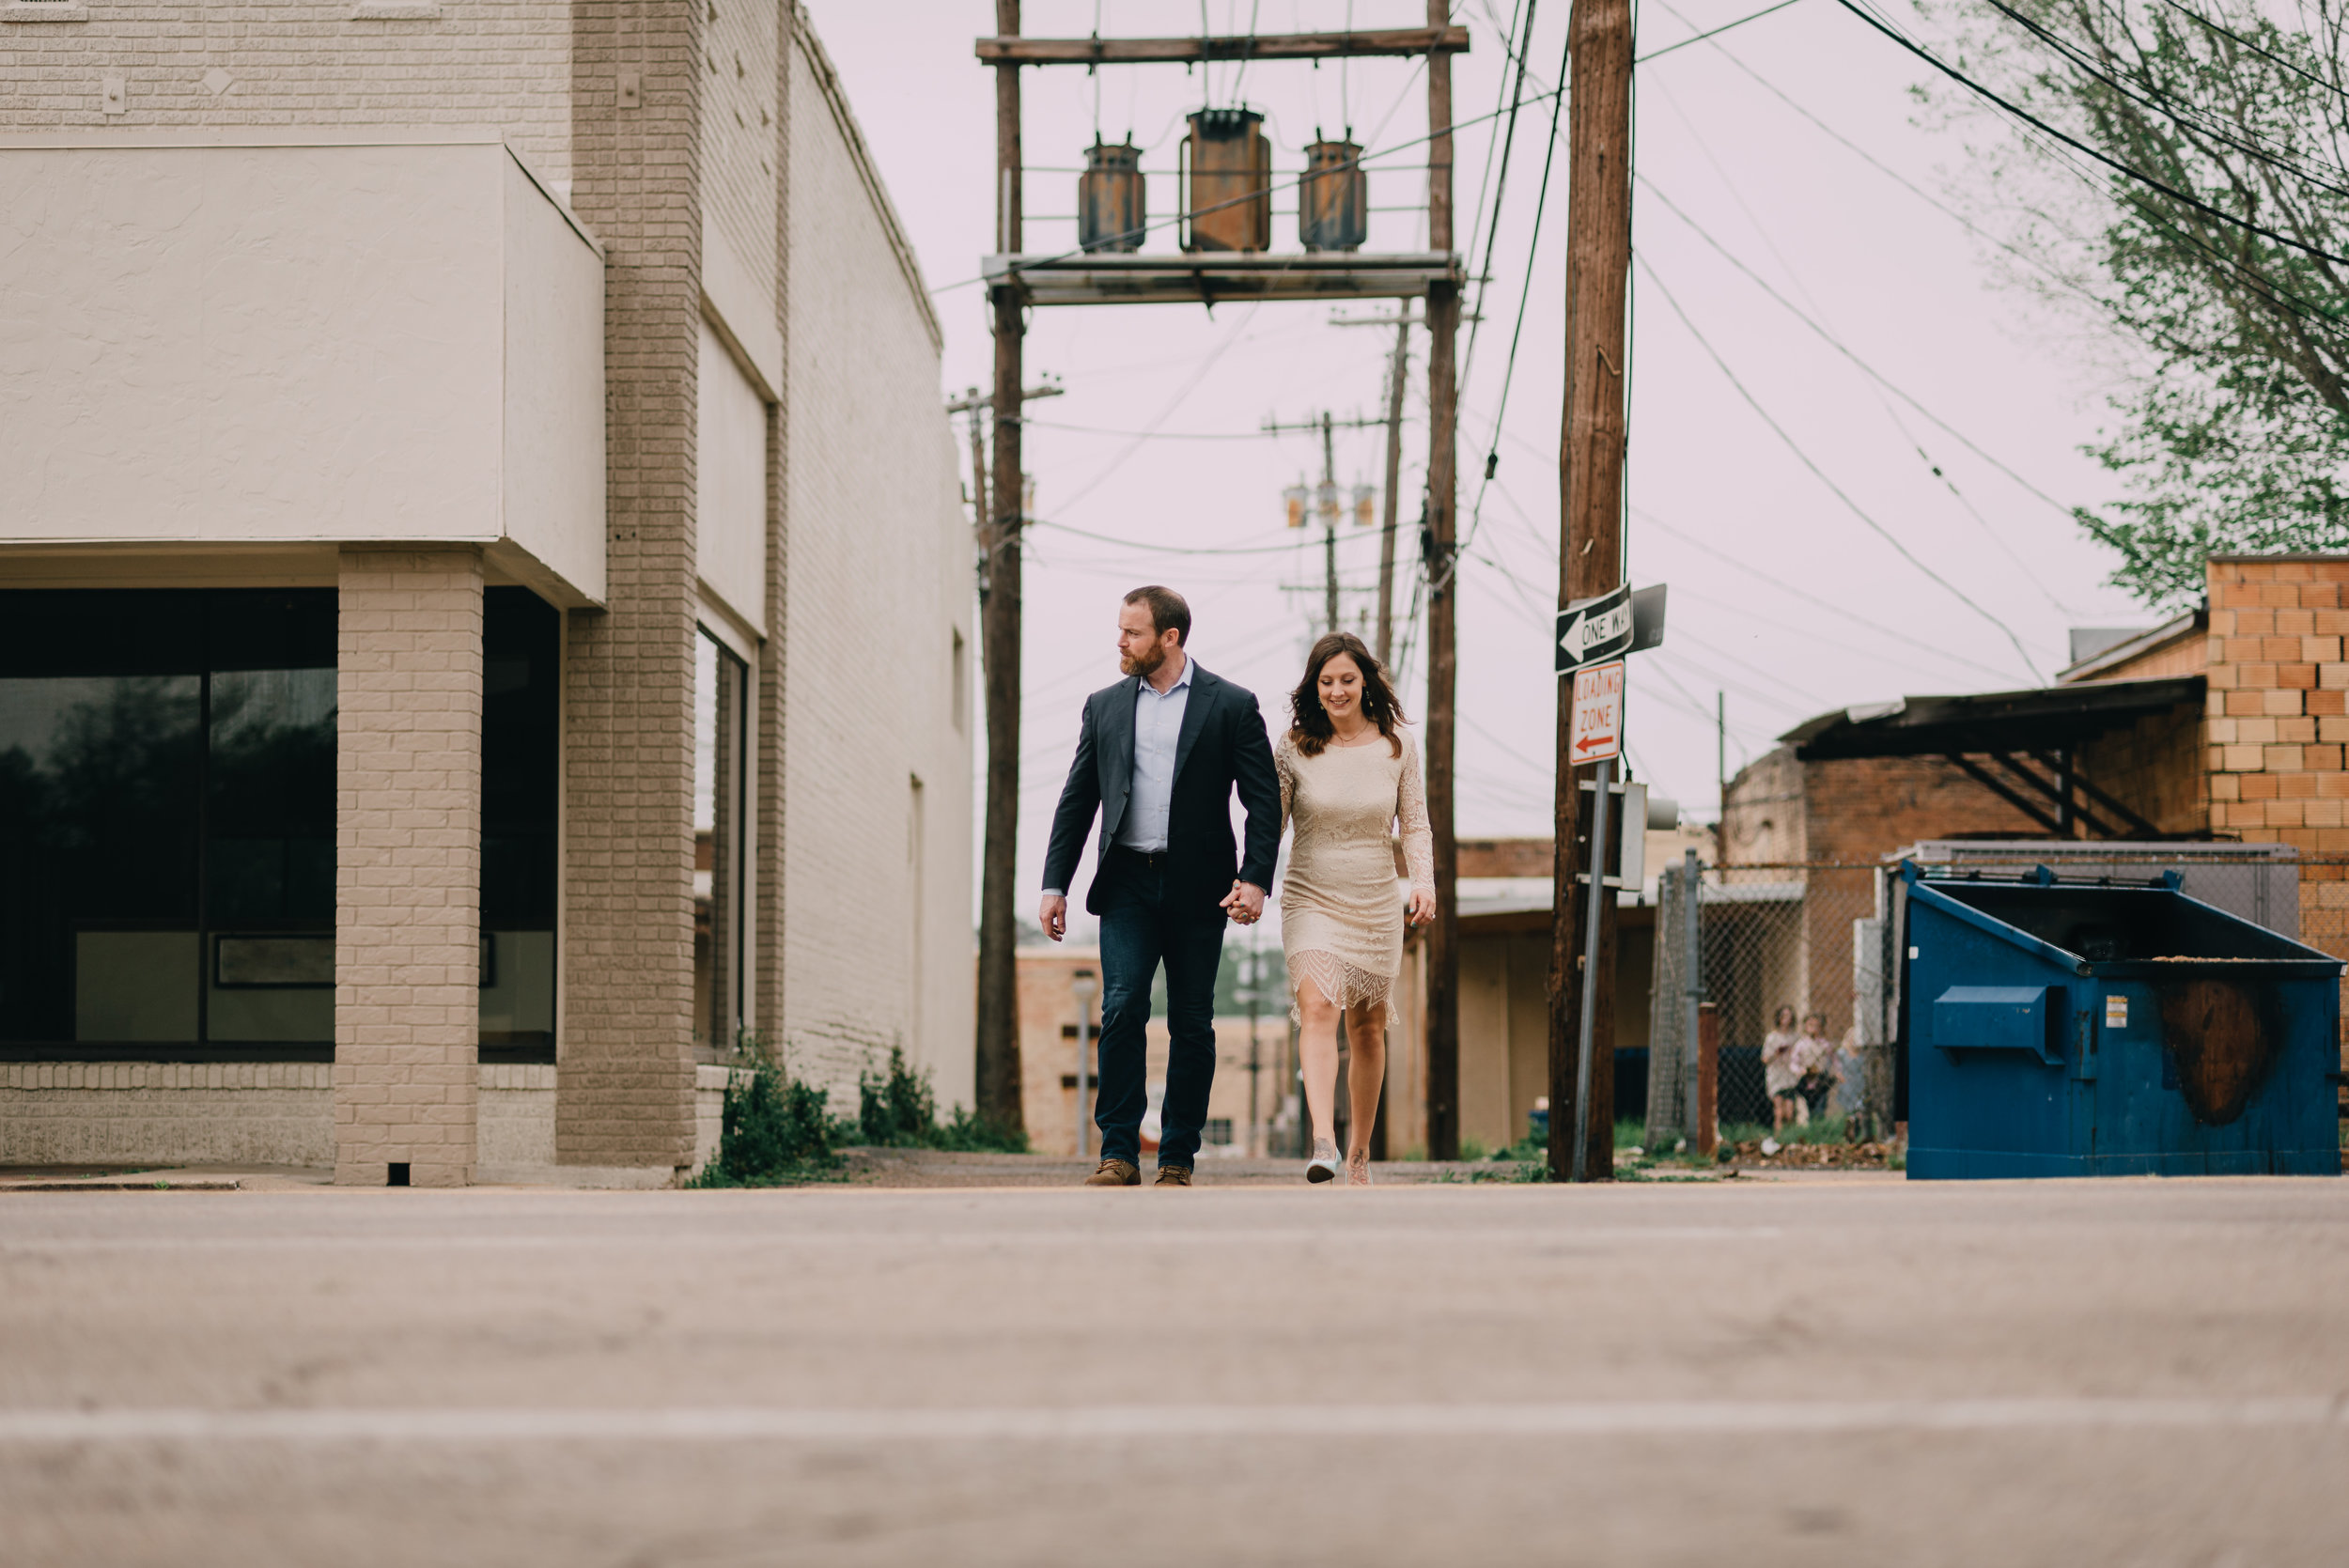 Kalli and Jake engagement photos 2018 (Austin Daniel Photo)-26.jpg